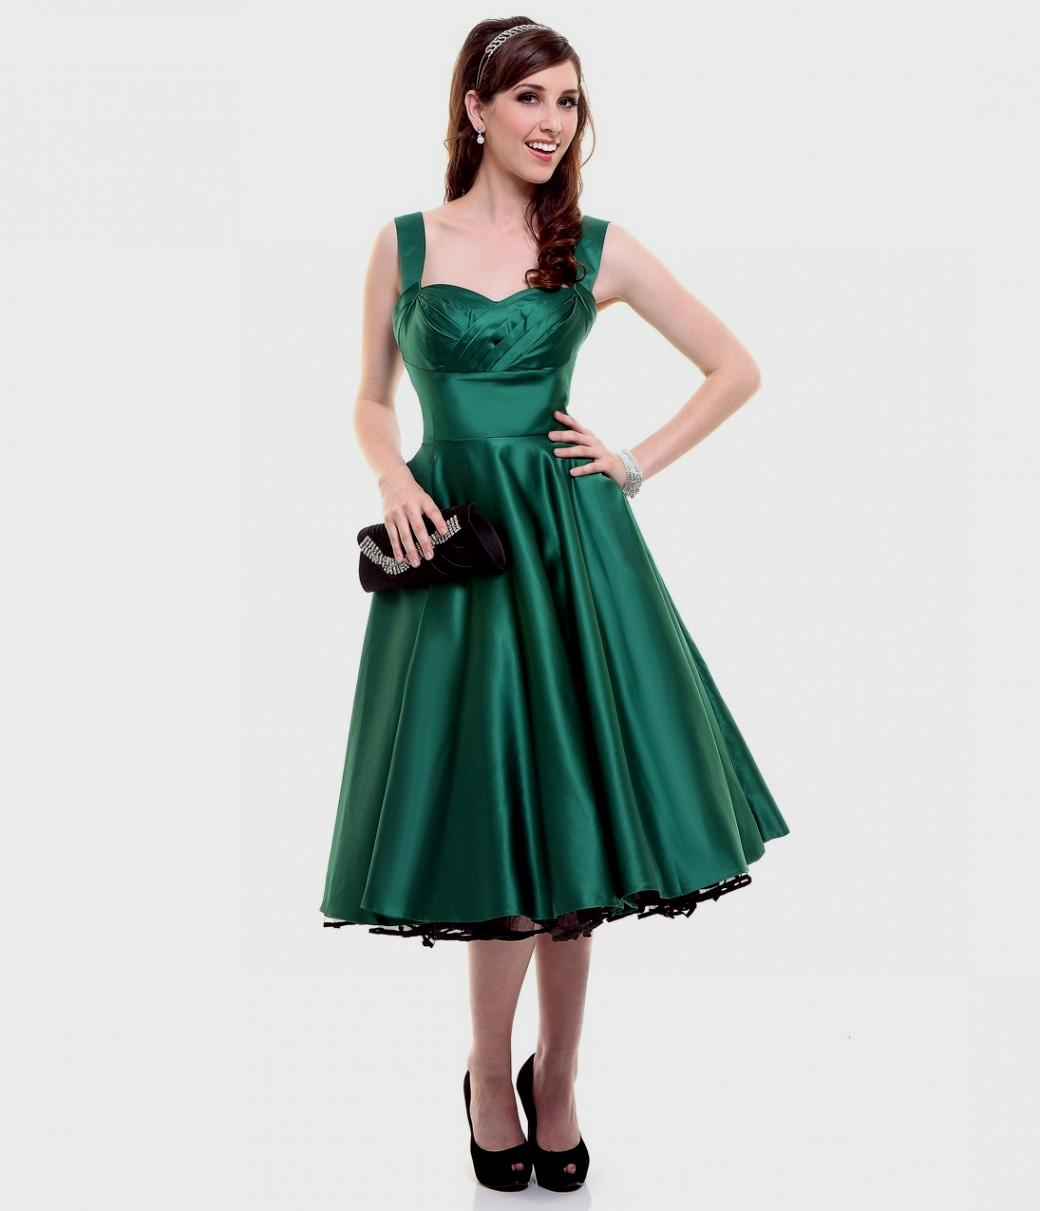 Emerald Green Prom Dresses Under 100 Amp Clothes Review